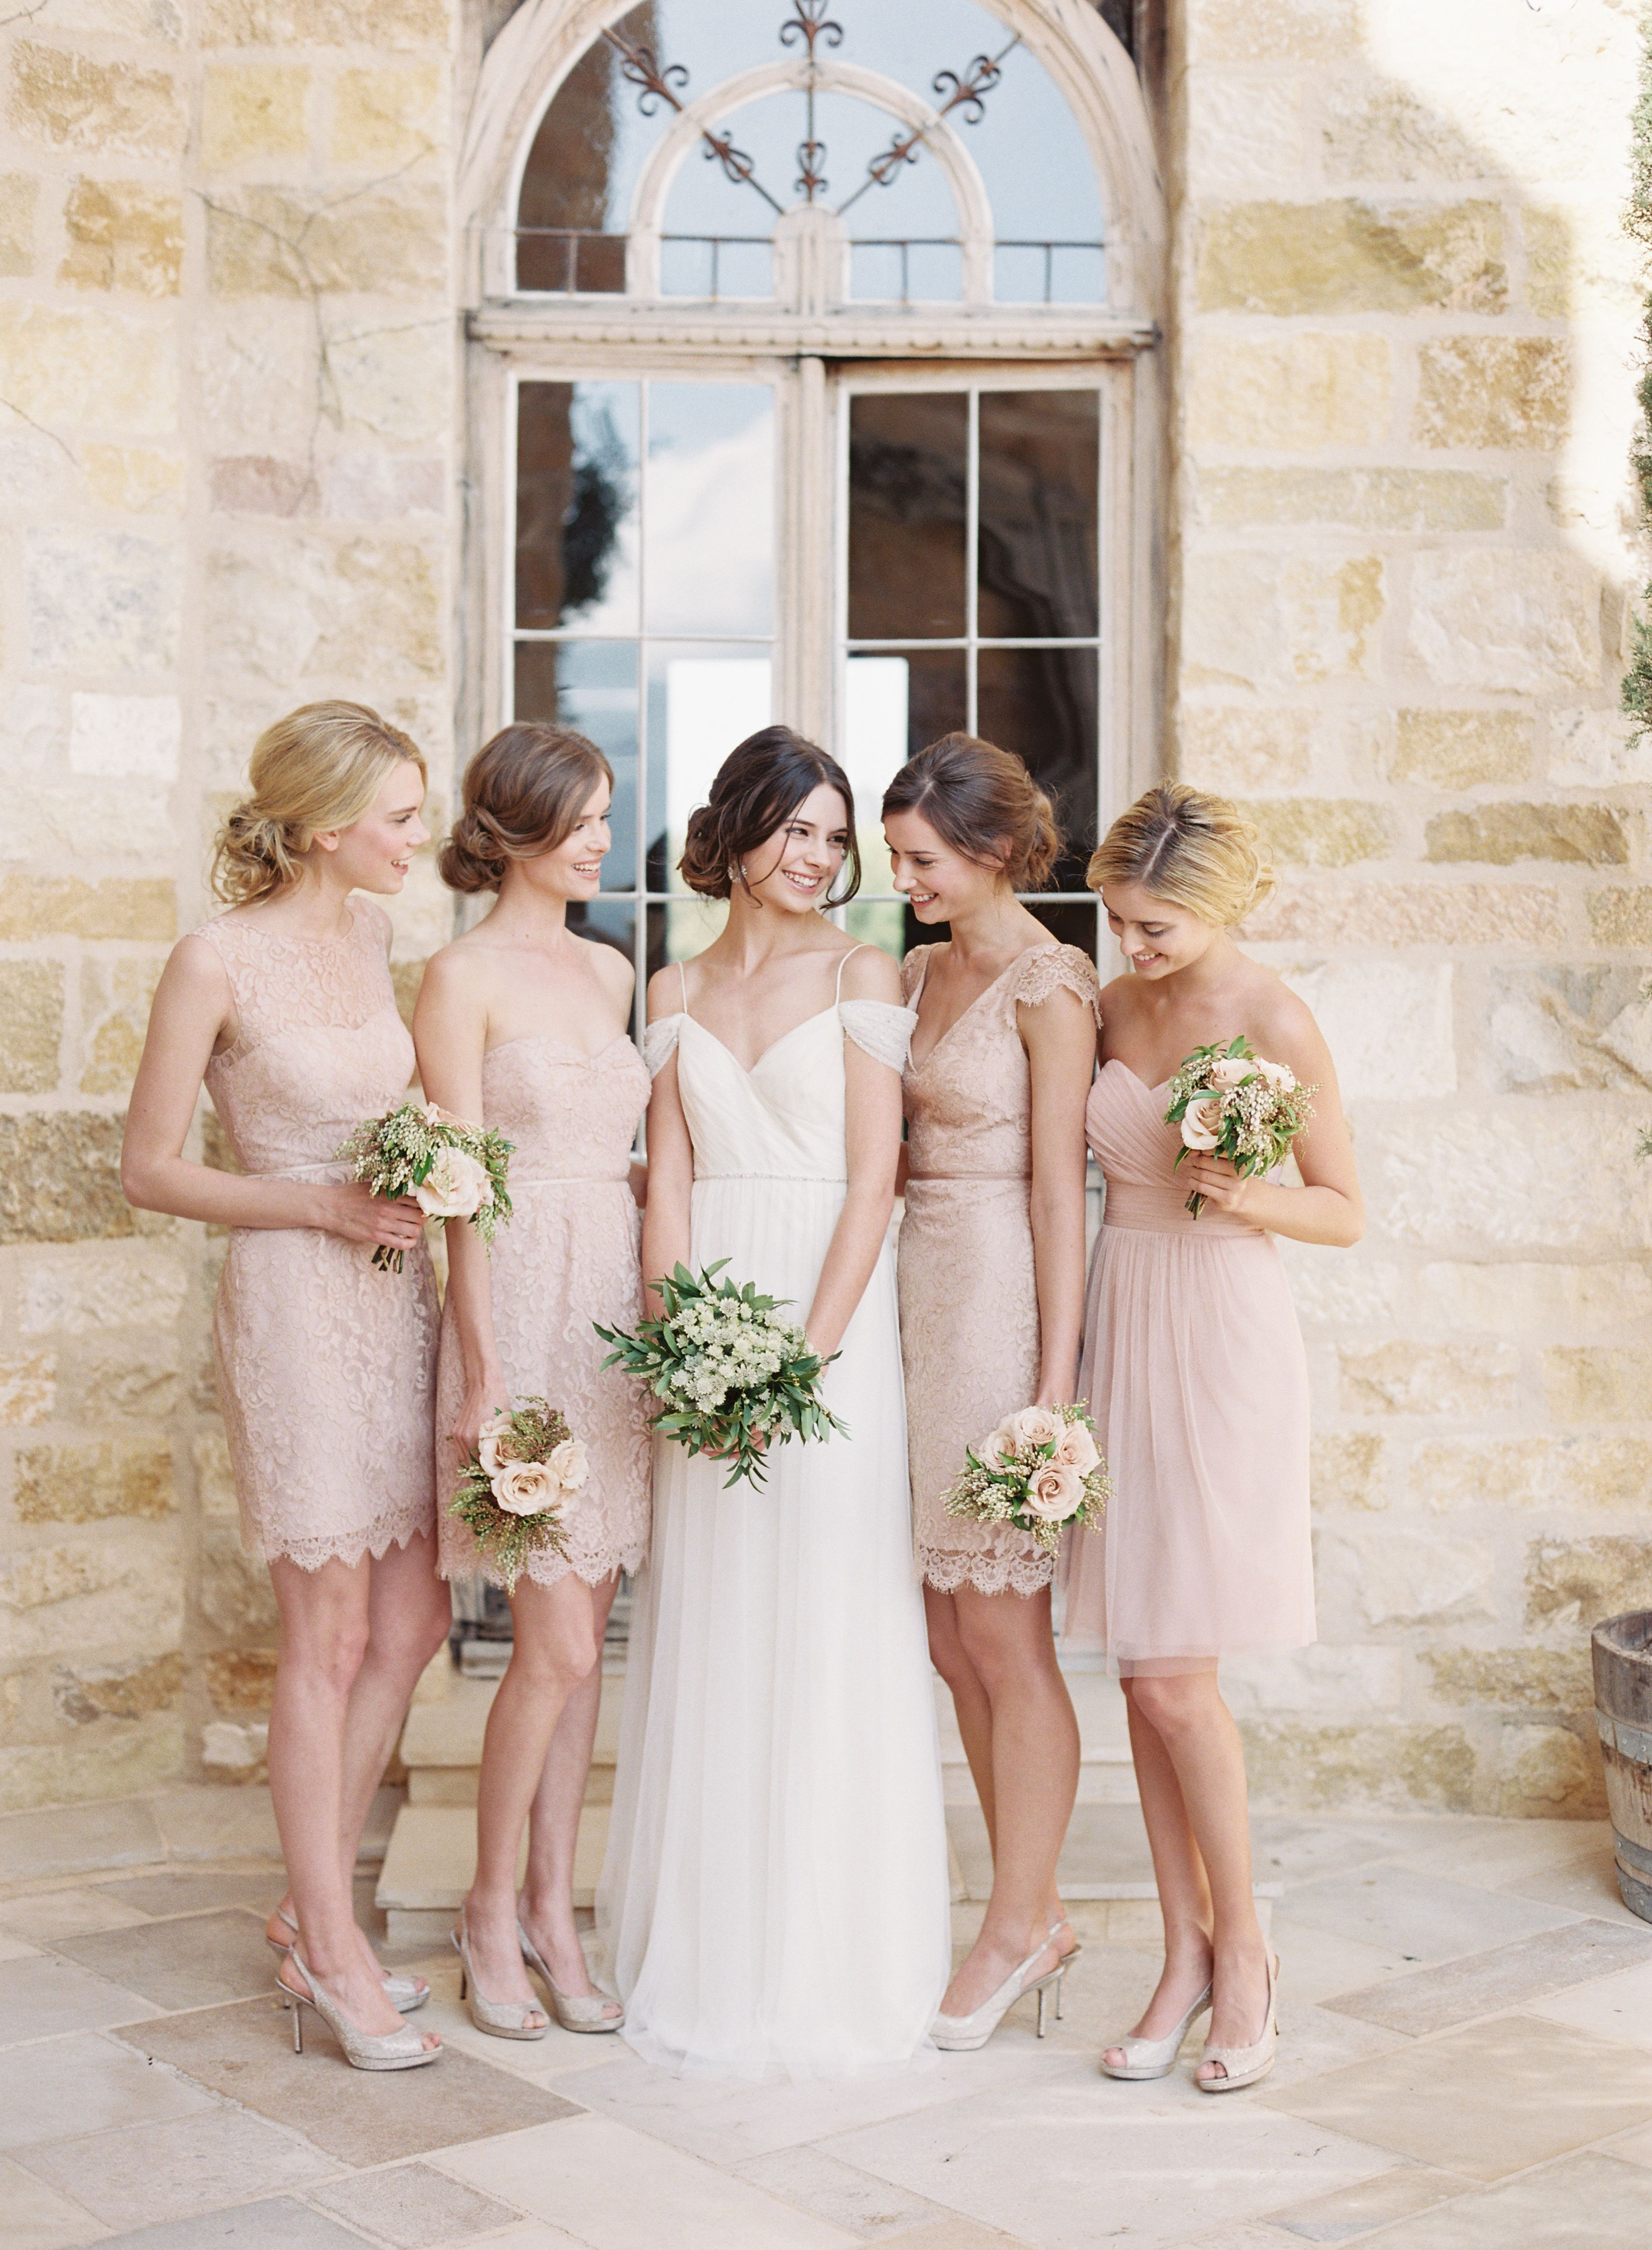 The Mia Gown And Blush Lace Amp Tulle Bridesmaid Dresses By